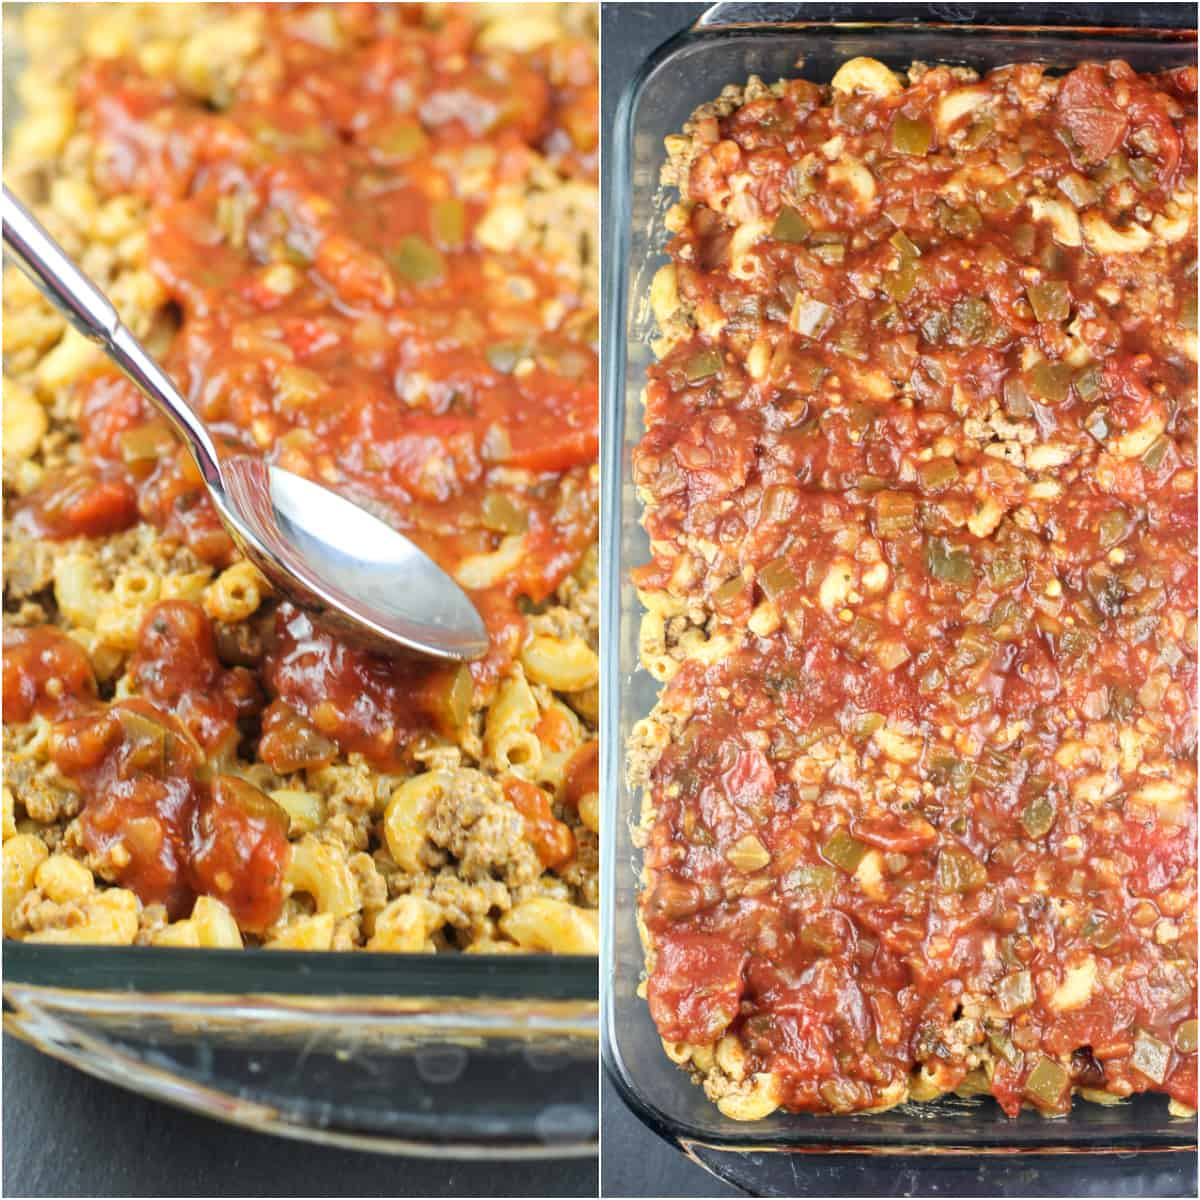 collage of 2 photos: left, spoon spreading salsa on macaroni-beef; right; salsa topped casserole